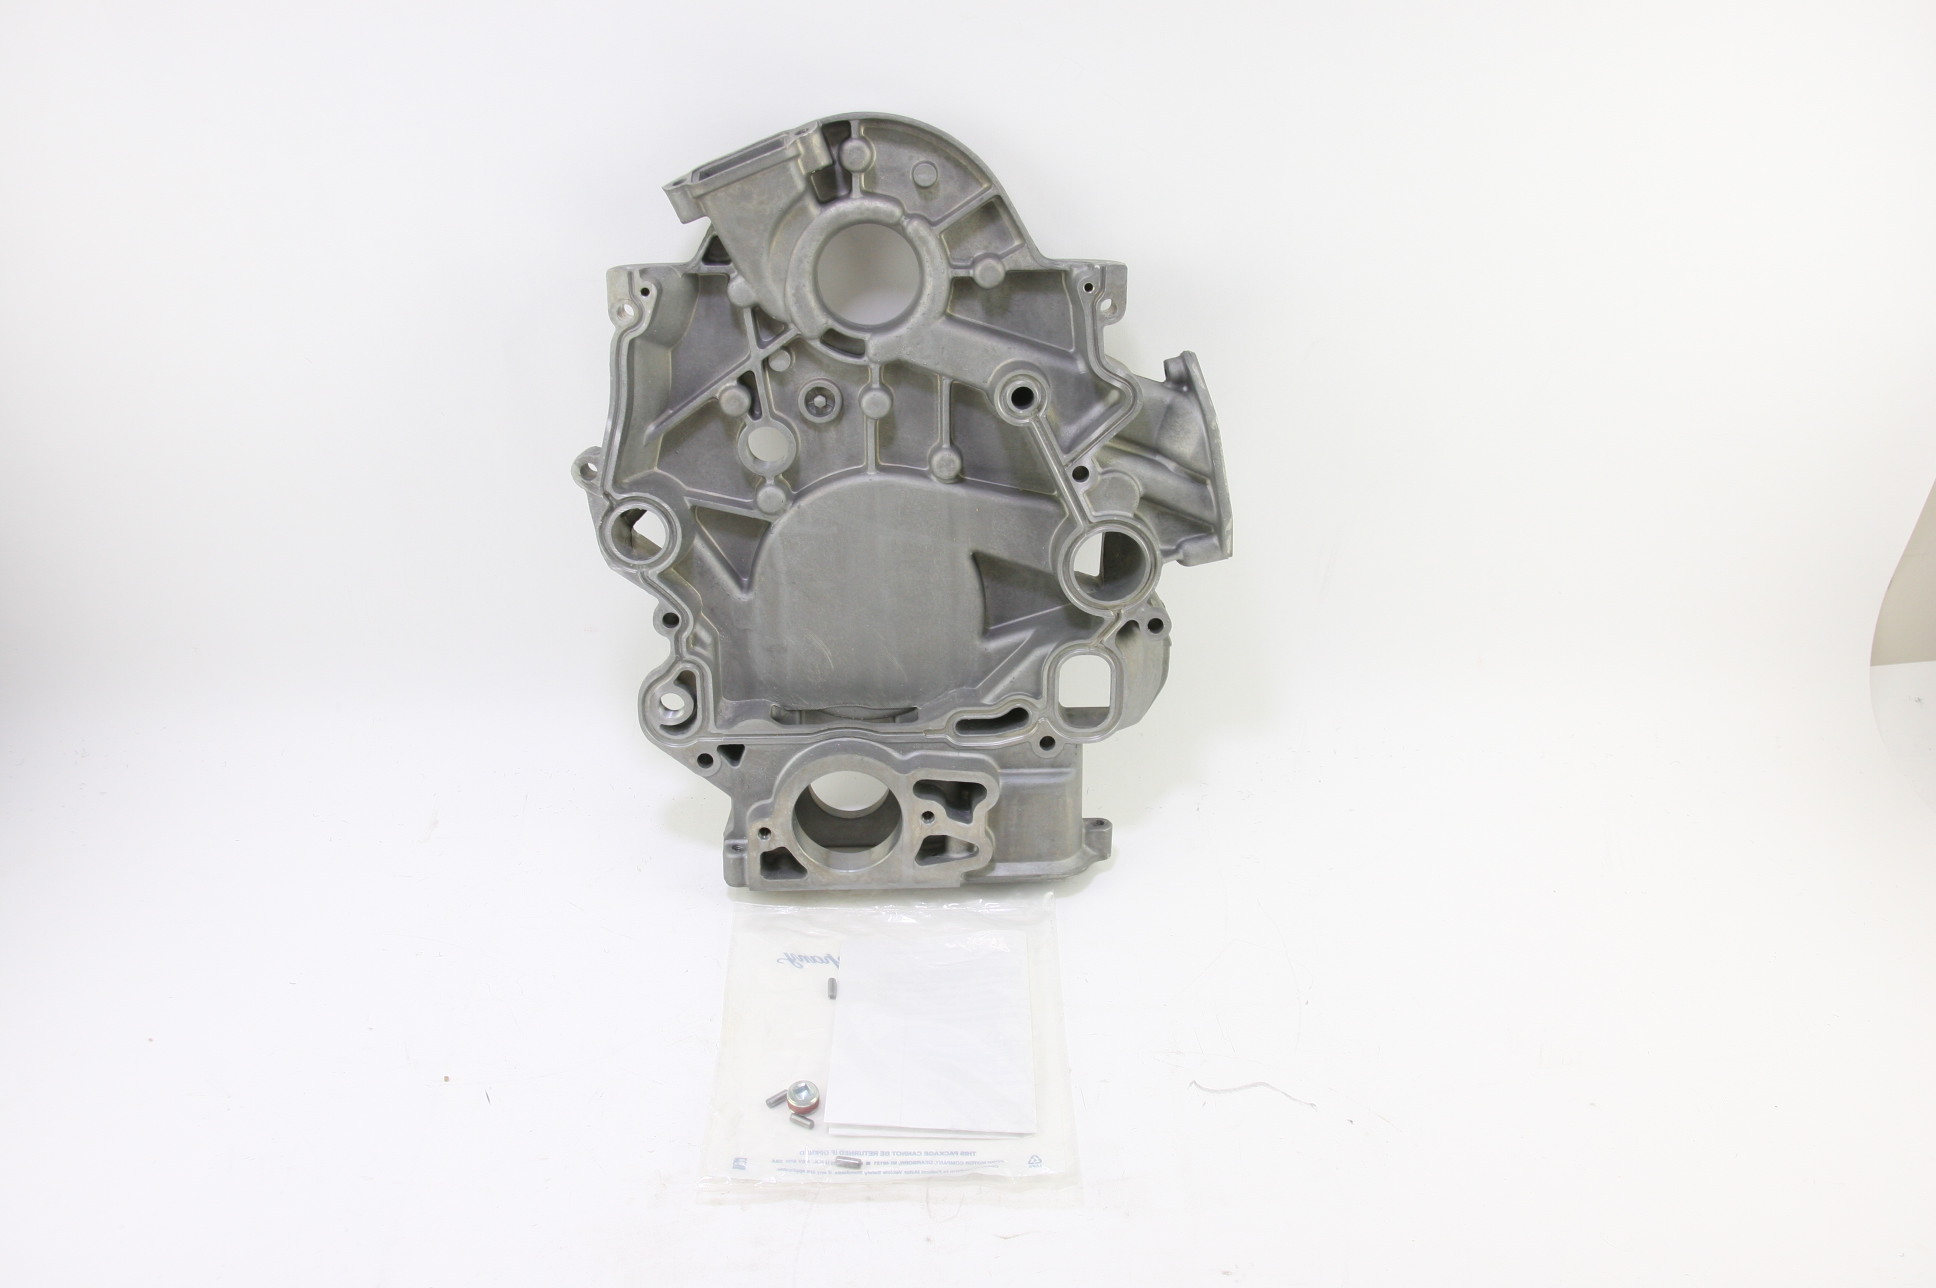 New OEM YC3Z6019BA Ford 99-03 F-350 Super Duty Engine Timing Cover Free Shipping - image 1